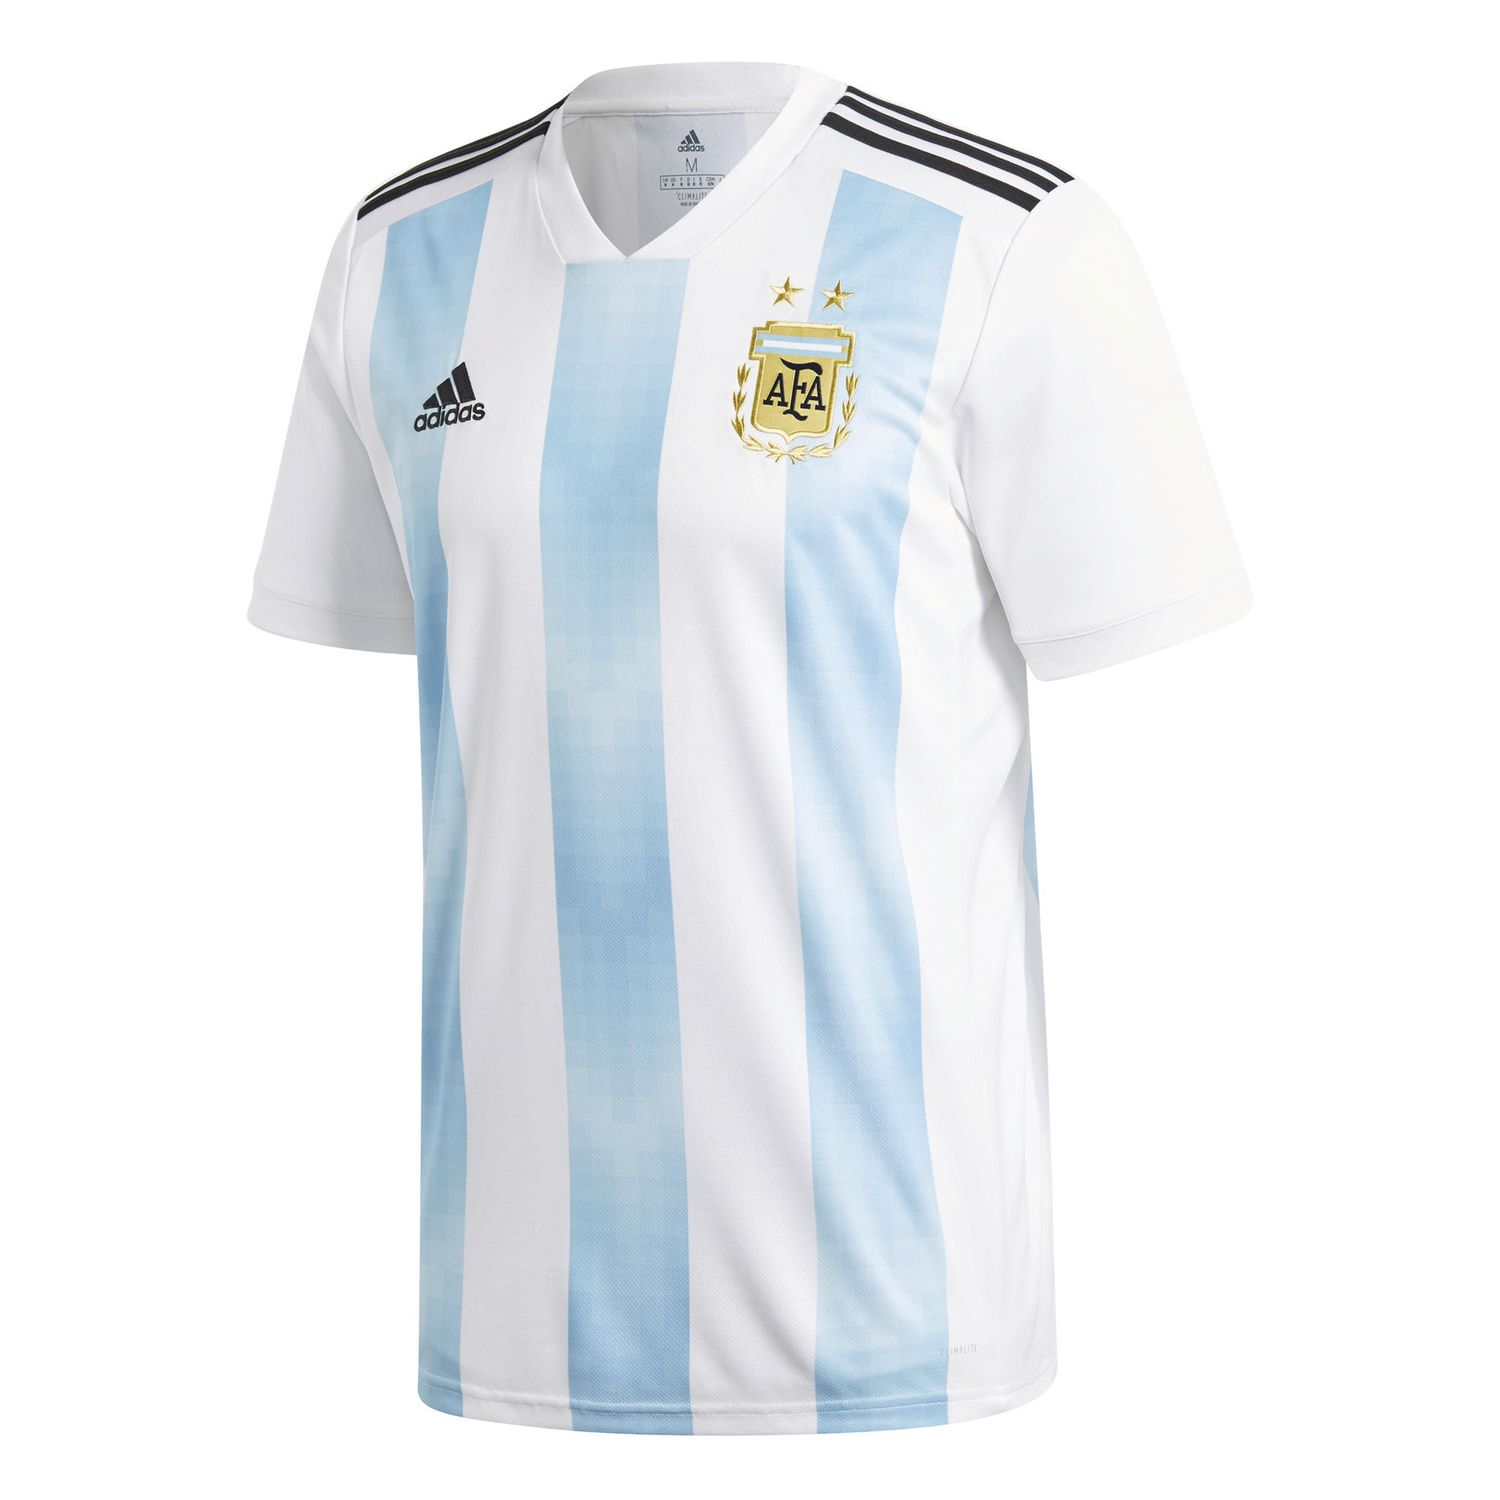 19bc8221a CAMISETA ADIDAS OF. SELECCION ARGENTINA 2018 - sporting